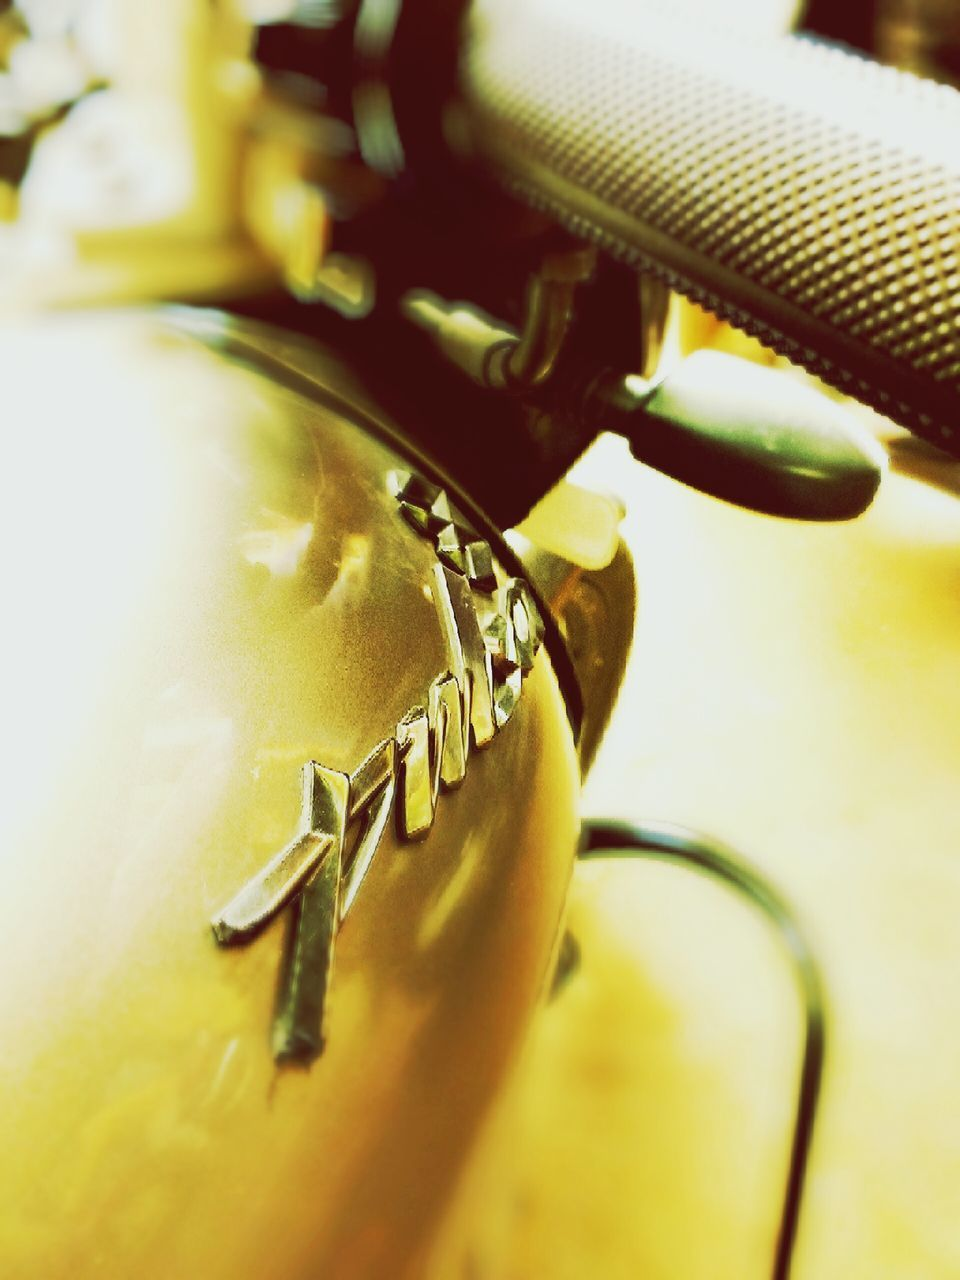 selective focus, close-up, metal, no people, indoors, machinery, gold colored, technology, gear, day